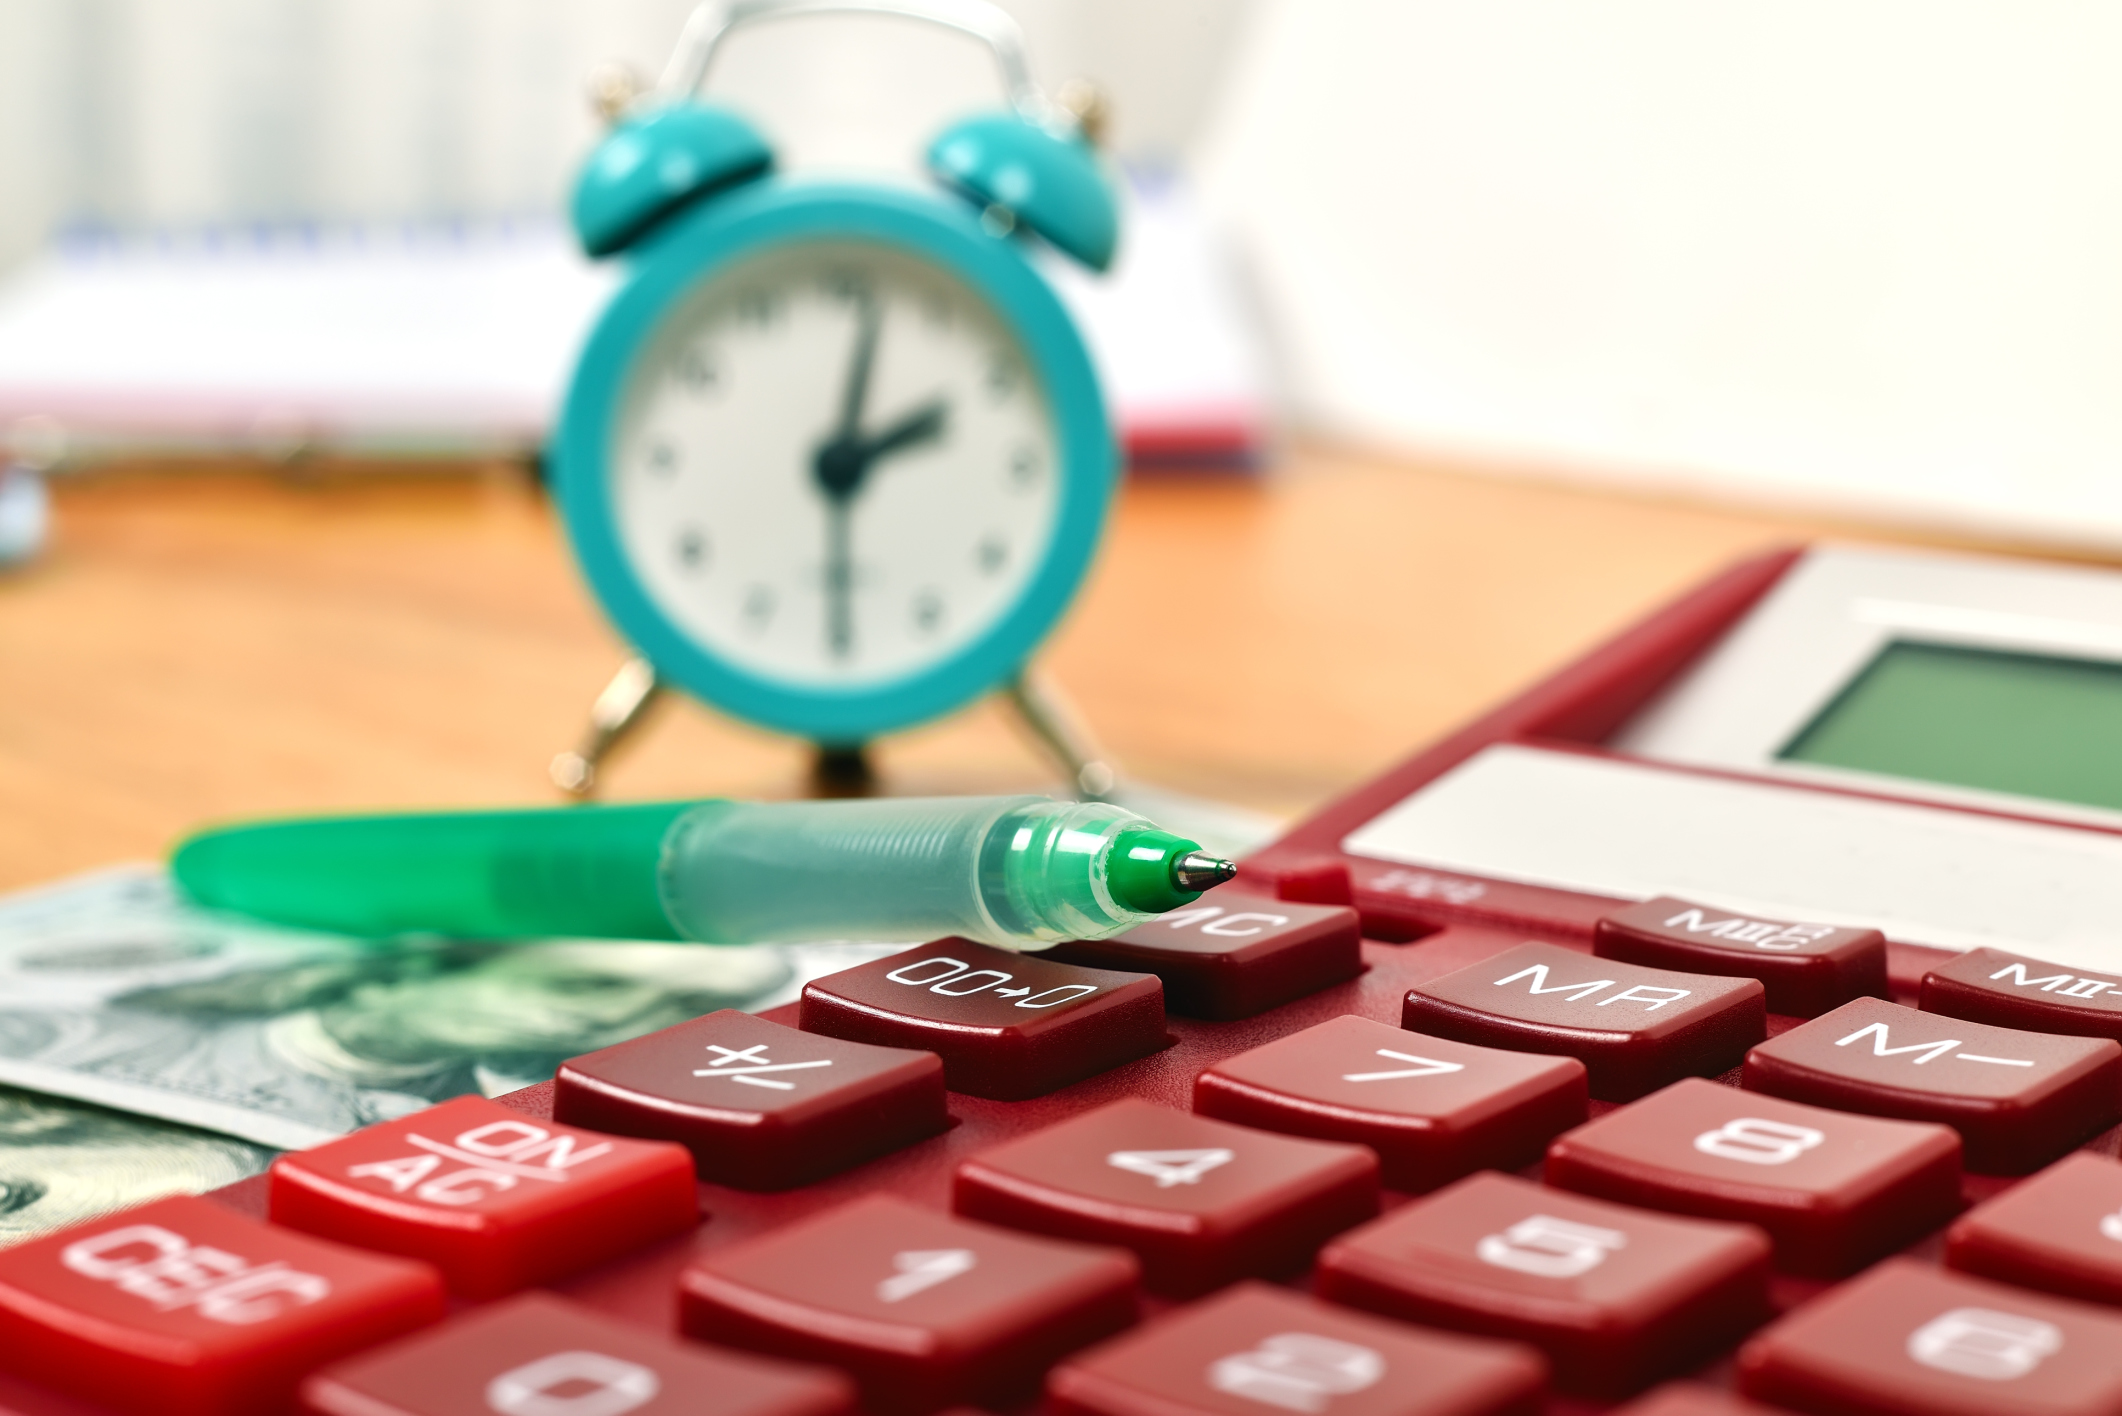 How to Calculate Hours Worked Including Minutes | Bizfluent